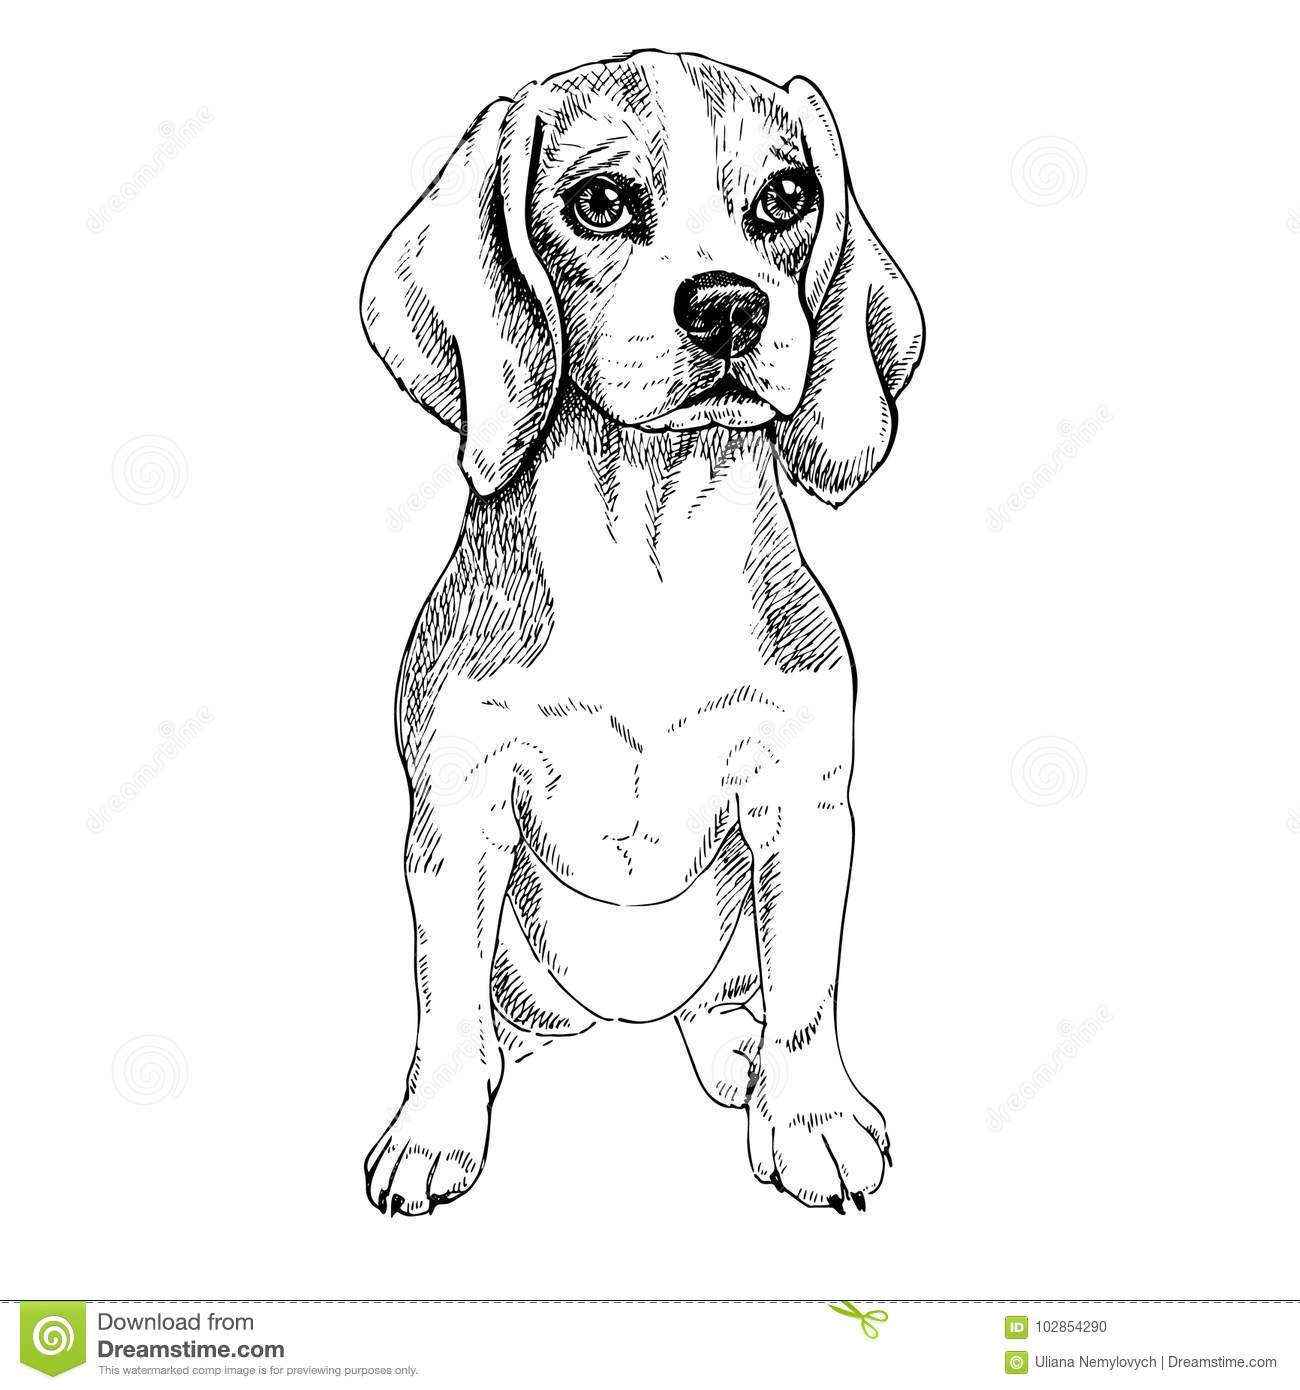 drawn hat police auto electrical wiring diagramvector sketch dog beagle breed vector illustration